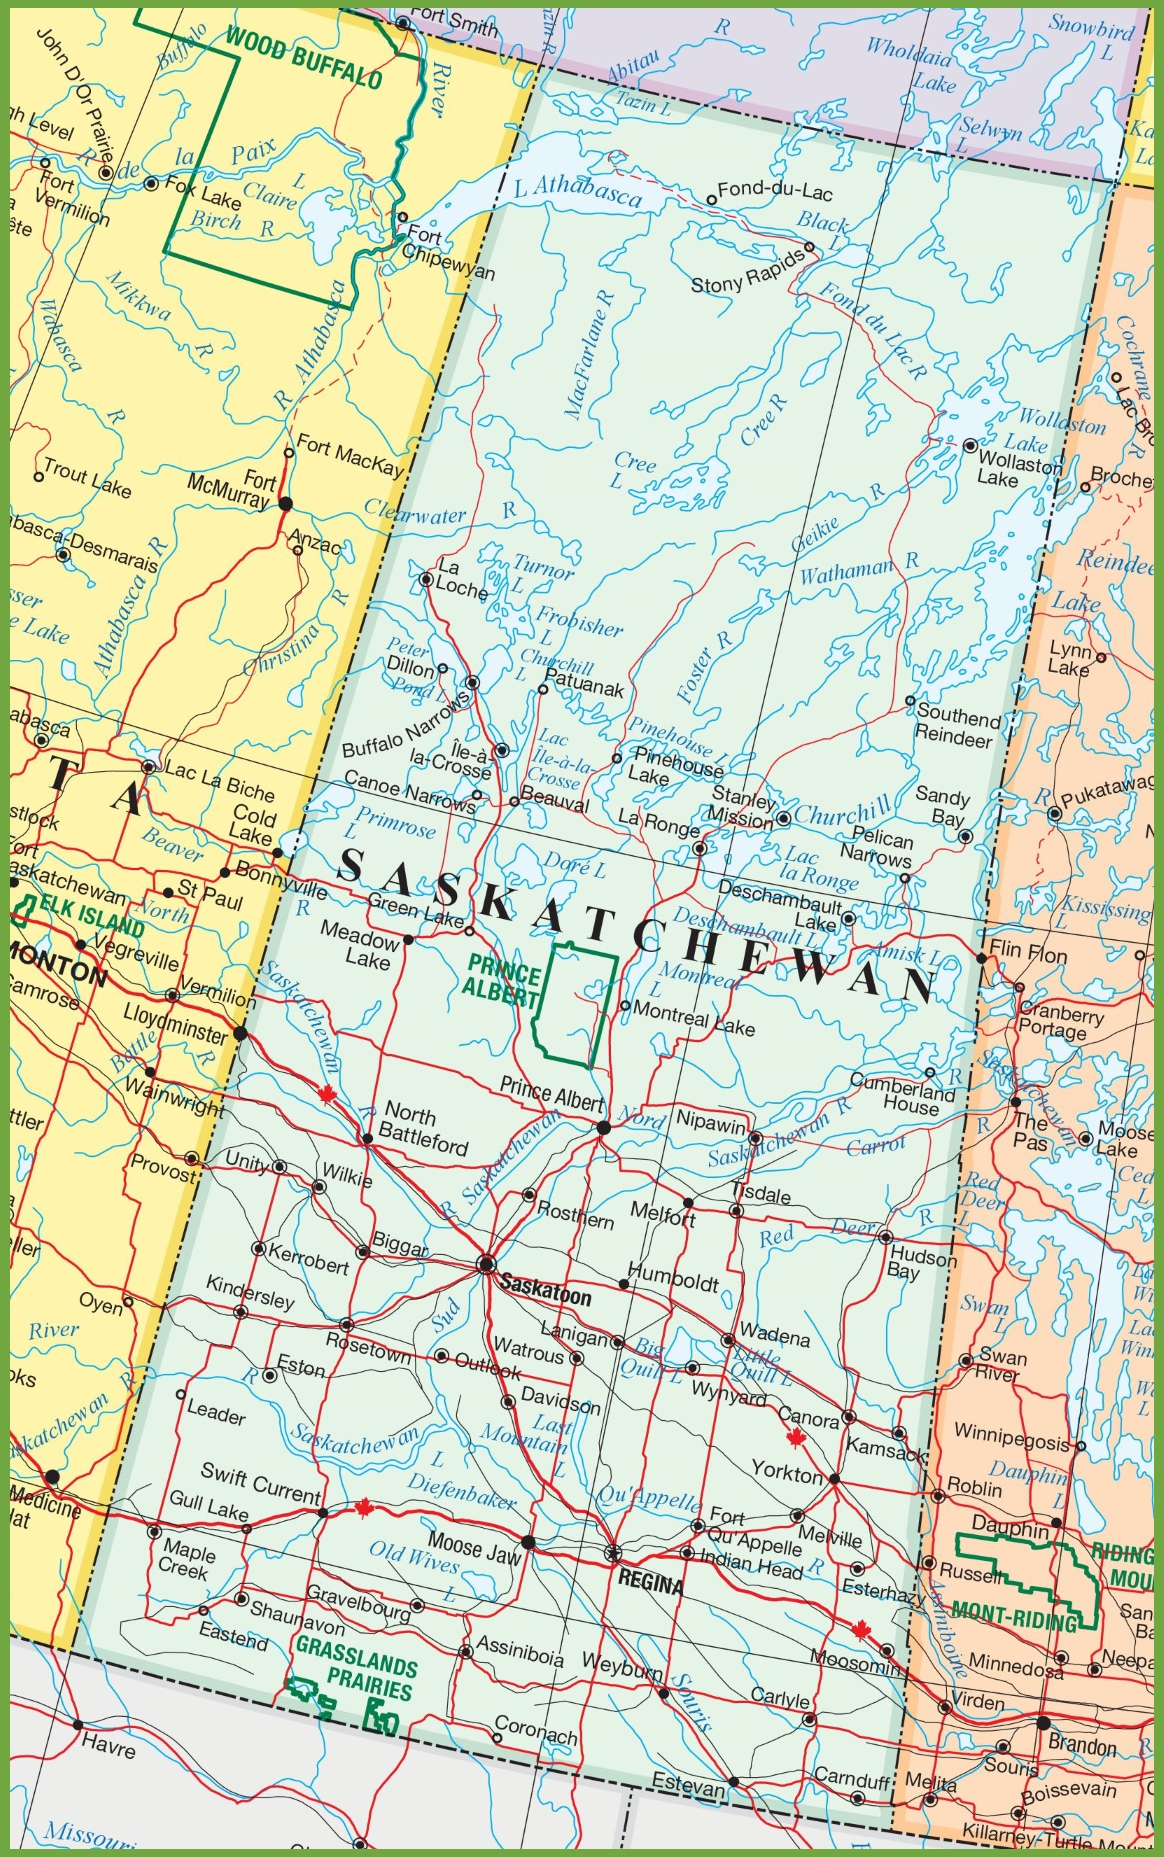 Sask Highway Map Saskatchewan road map